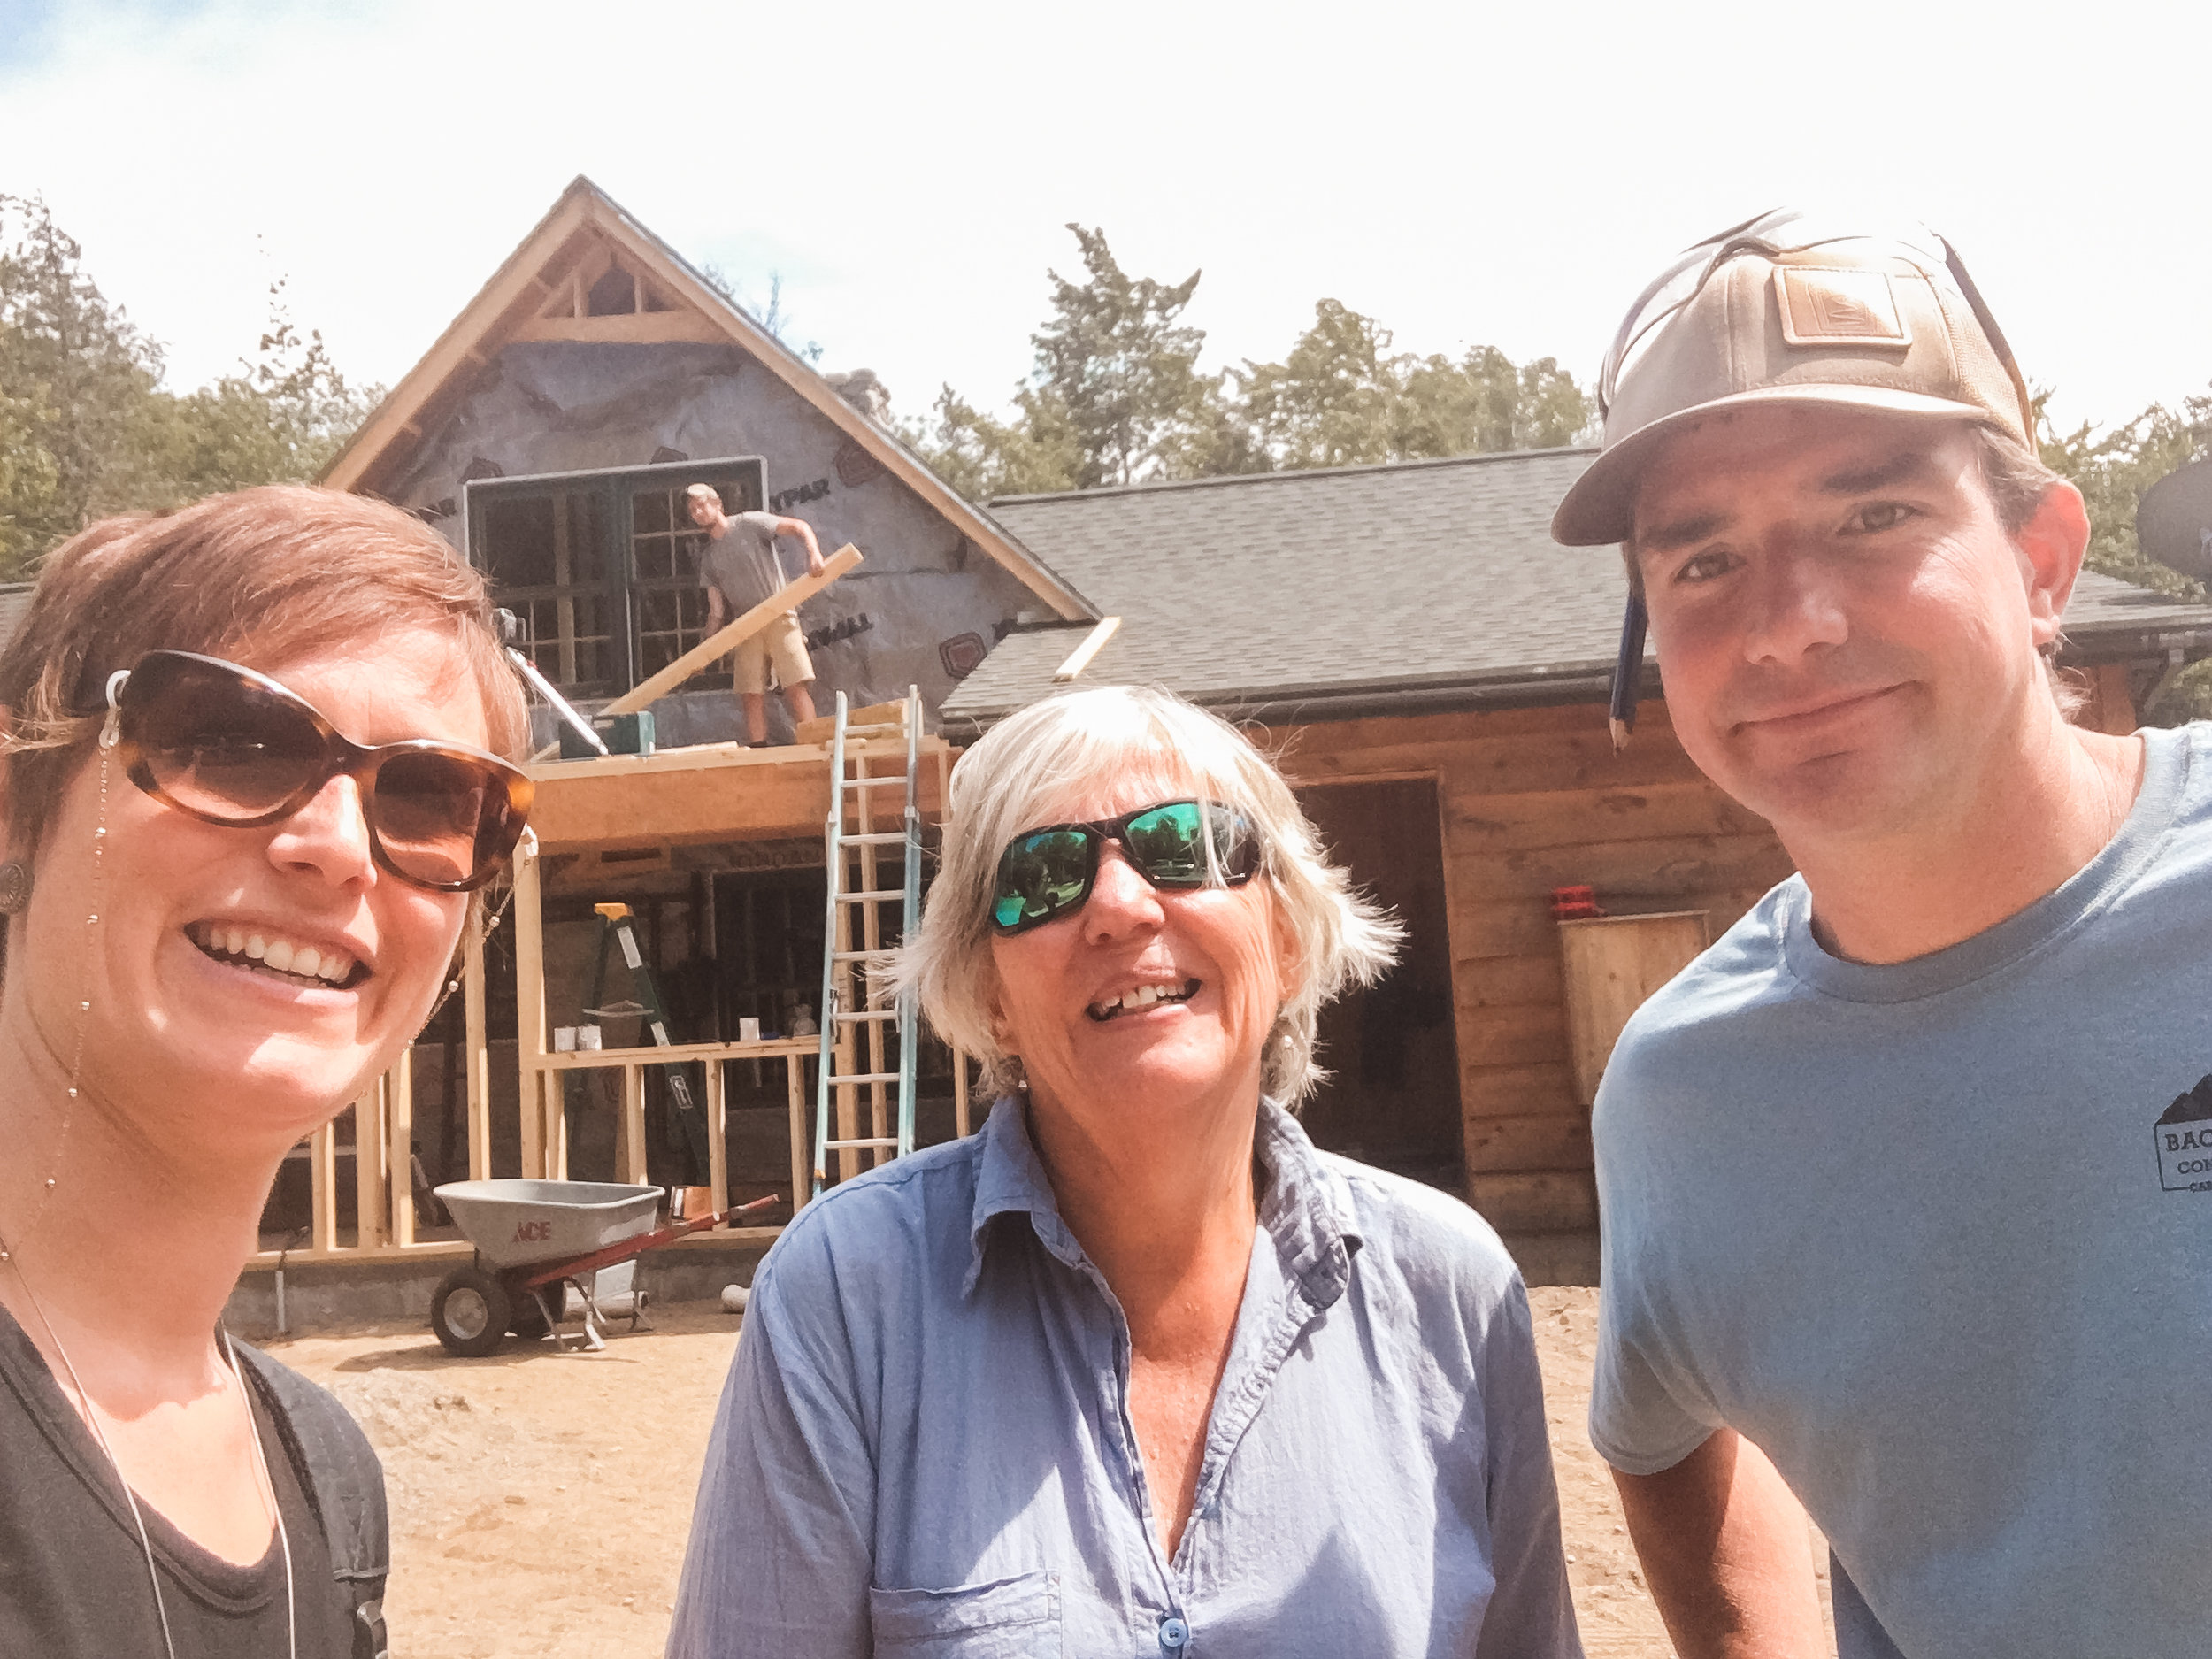 Construction 🚧 is in progress on this Sugarloaf addition/ remodel! This is me 👋🏻 with the client & contractor. It's so exciting when the building starts to take shape...🕺🏻 I find that regularly scheduled team site meetings are incredibly helpful in making the right decisions & maintaining communication. 🙌🏻 Open communication! So important in construction. (And in everything else.)